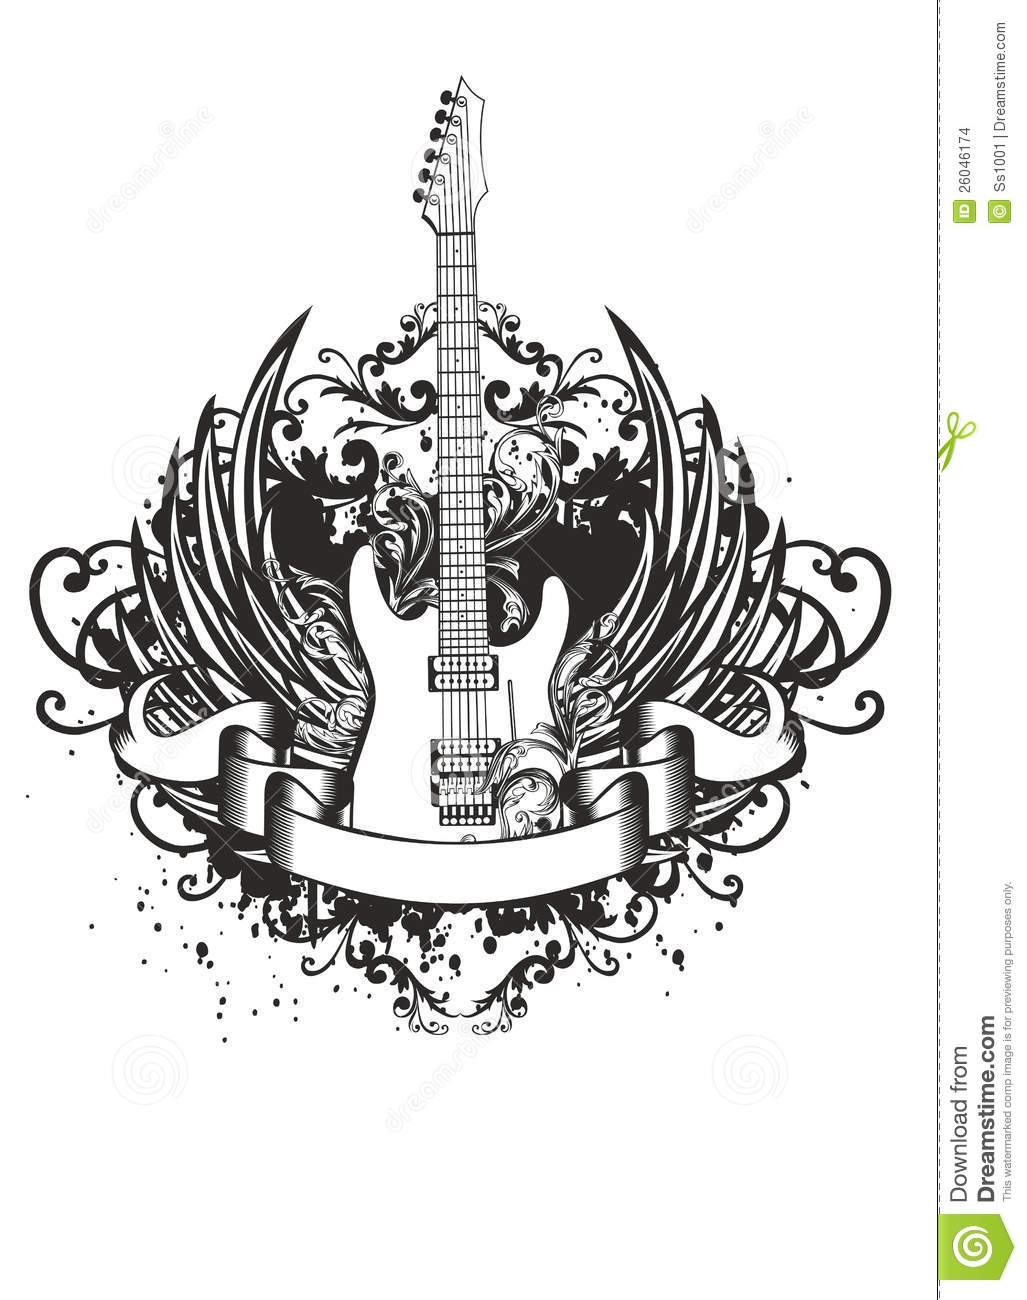 Guitar with wings, patterns